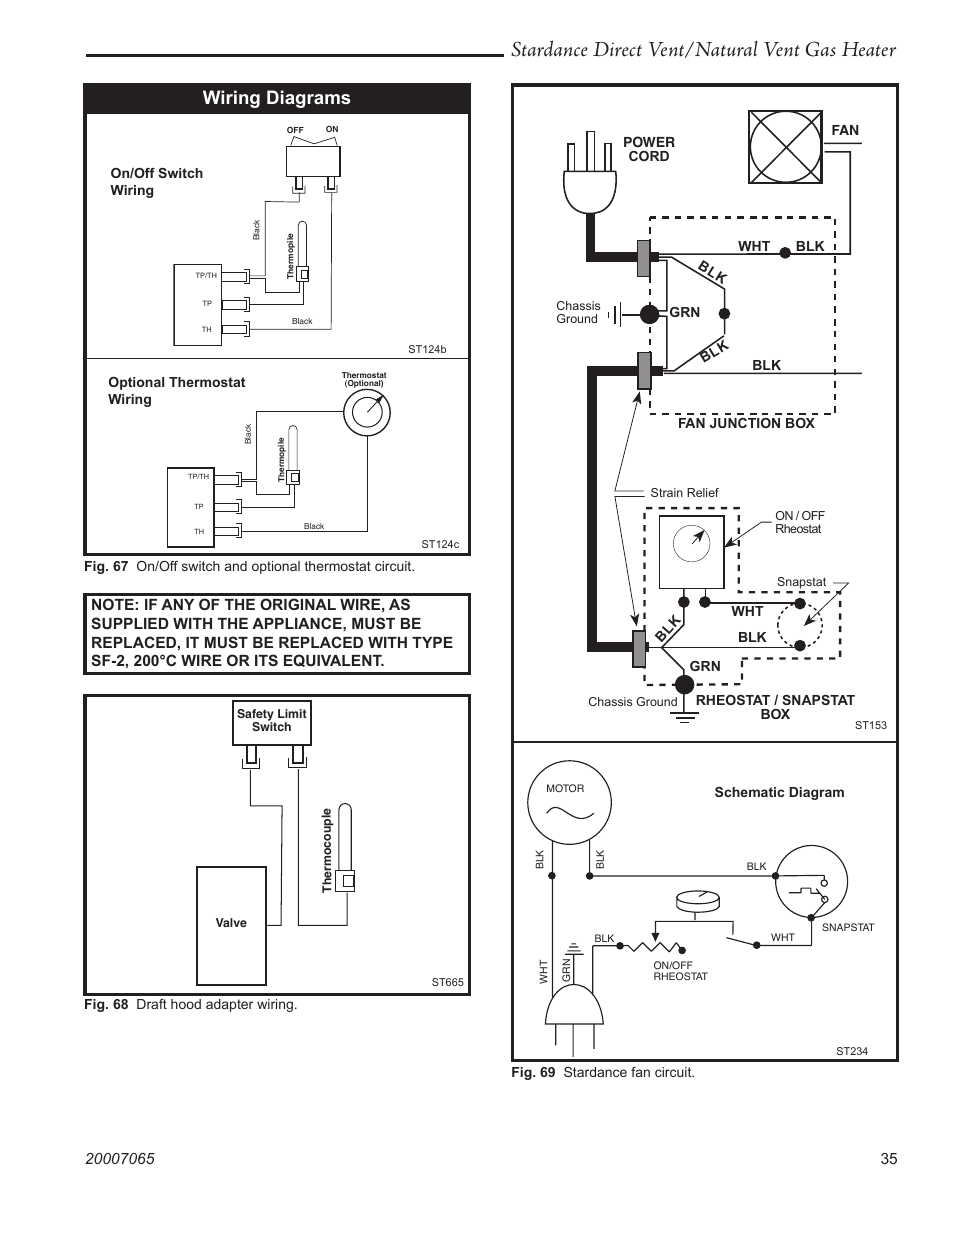 hight resolution of stardance direct vent natural vent gas heater wiring diagrams vermont casting stardance sdv30 user manual page 35 44